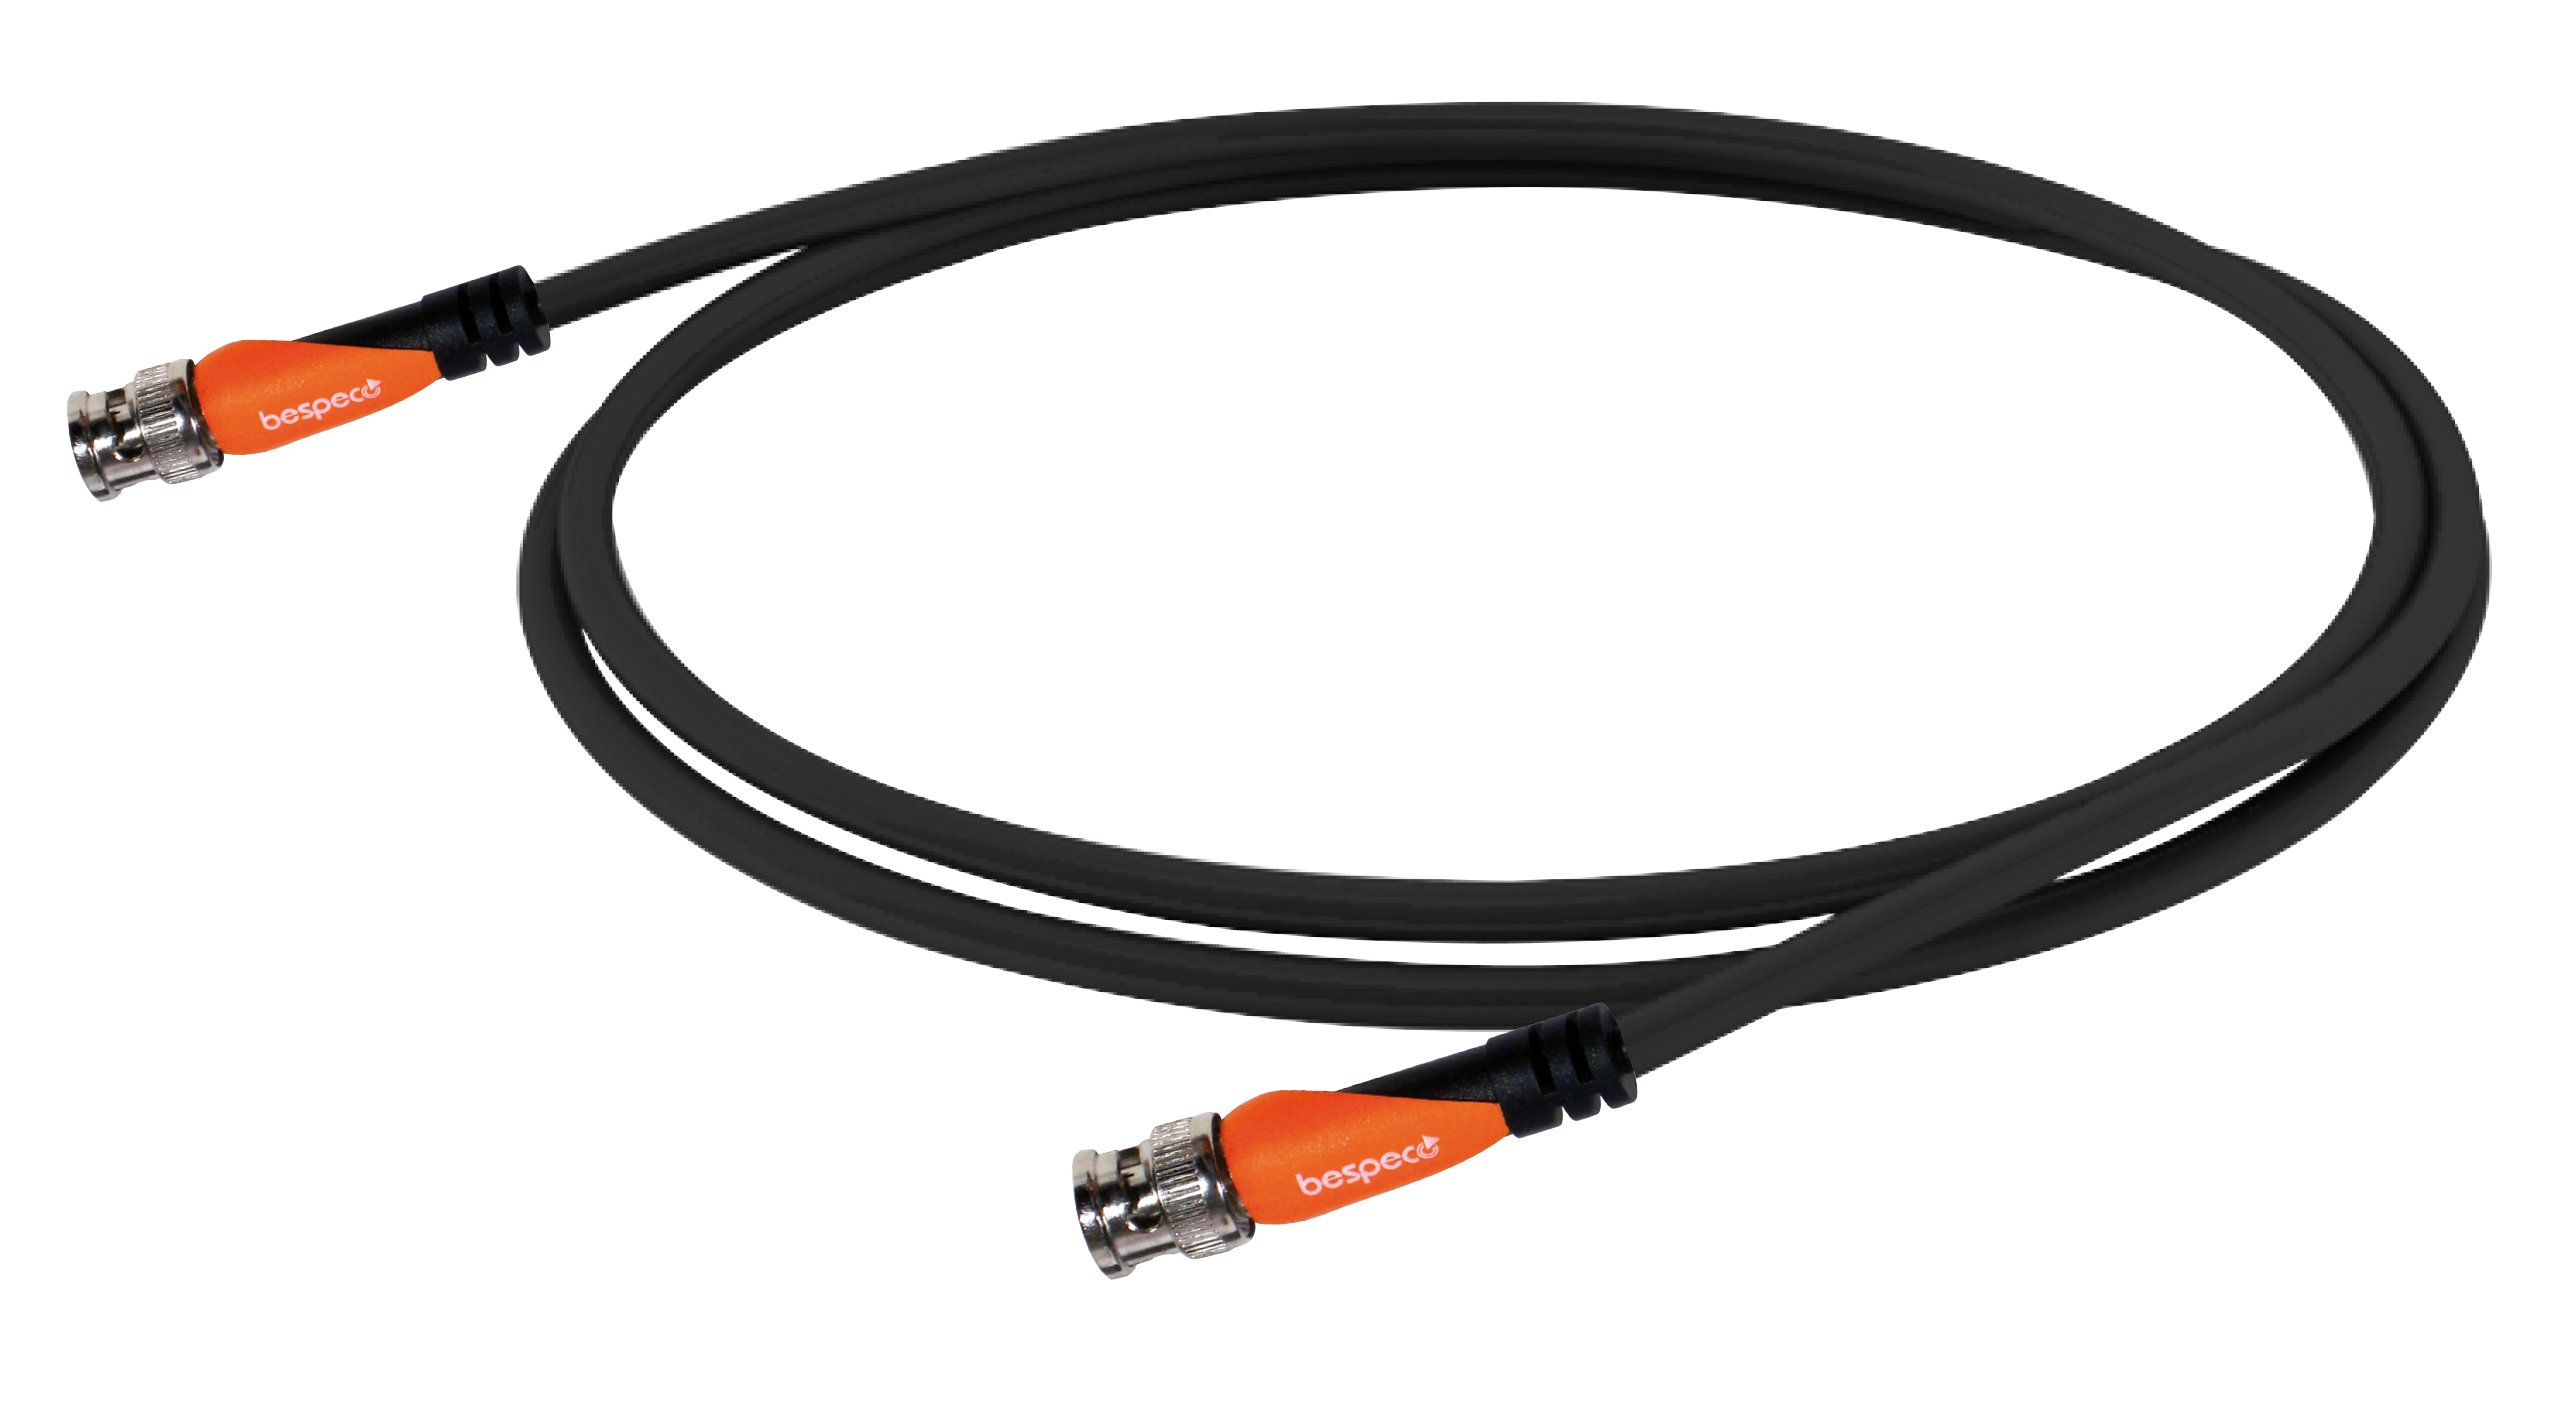 Bespeco SLBNC500 5 m Video Cable with BNC Connectors